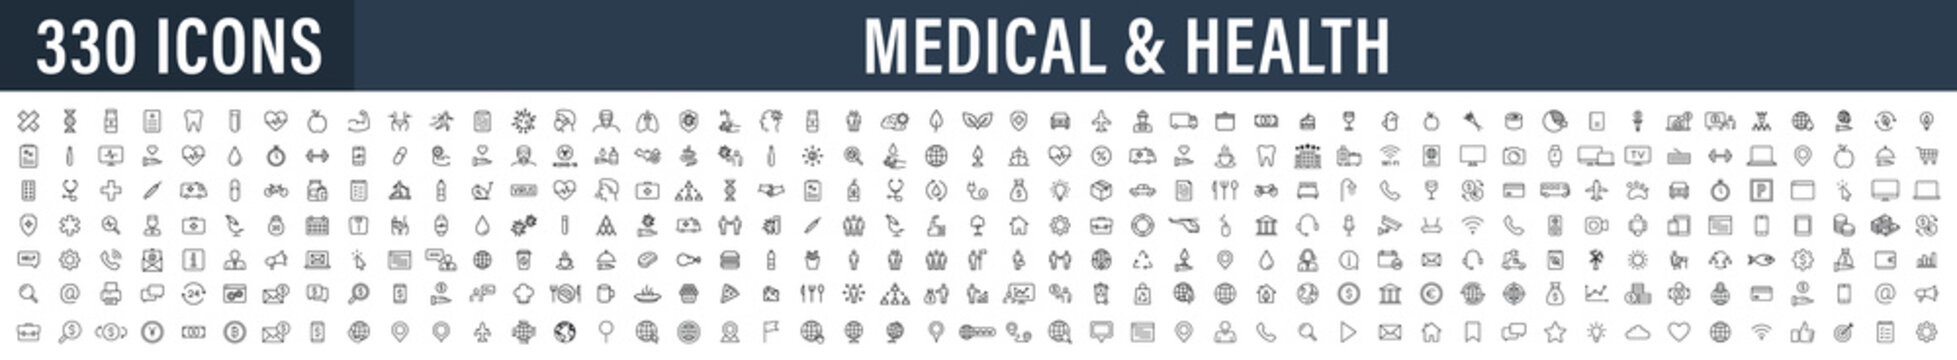 Set of 330 Medical and Health web icons in line style. Medicine and Health Care, RX, infographic. Vector illustration.